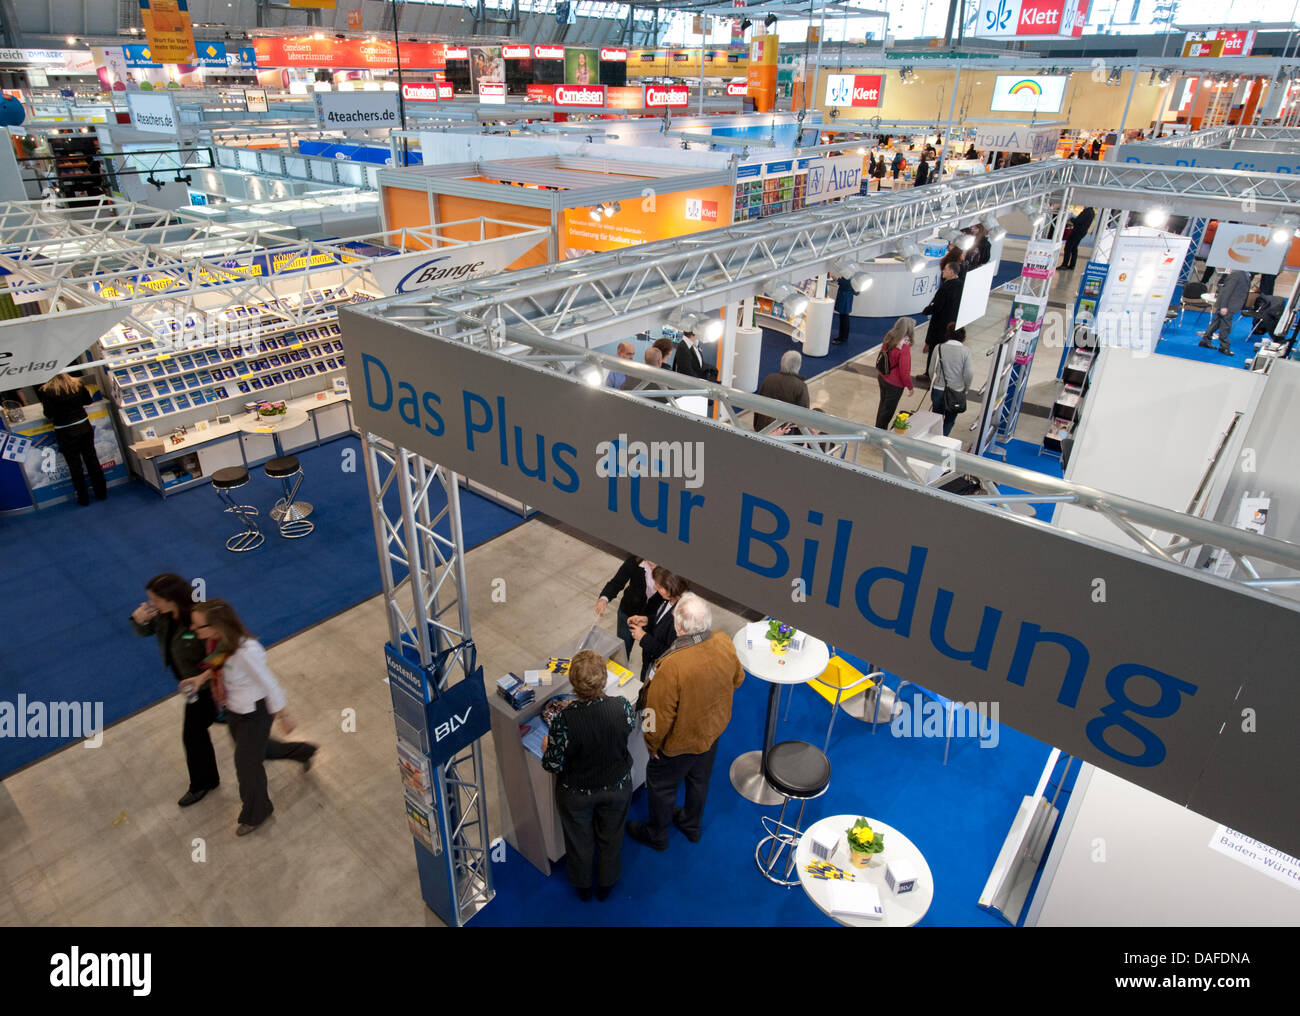 View over 'didacta' education trade fair in Stuttgart, Germany, 22 February 2011. A total of 863 - Stock Image